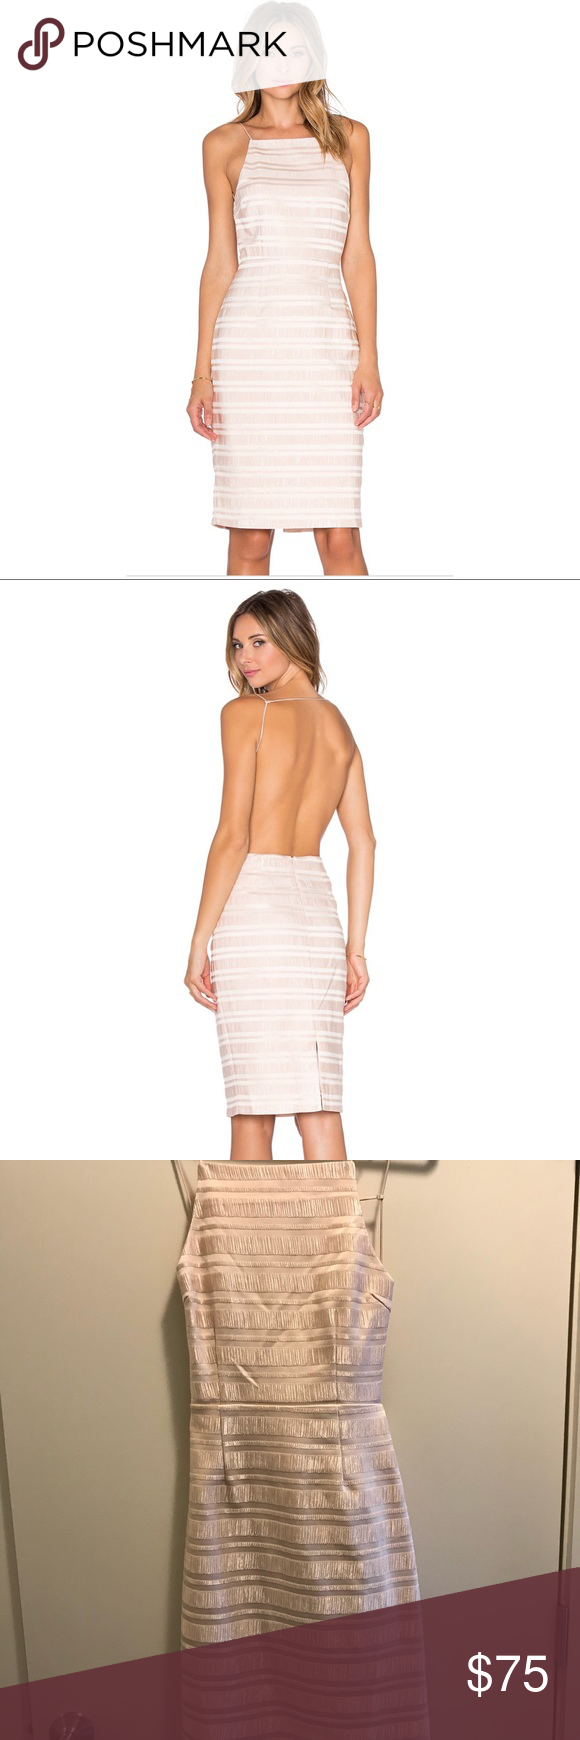 Endless Rose Metallic Backless Cocktail Dress